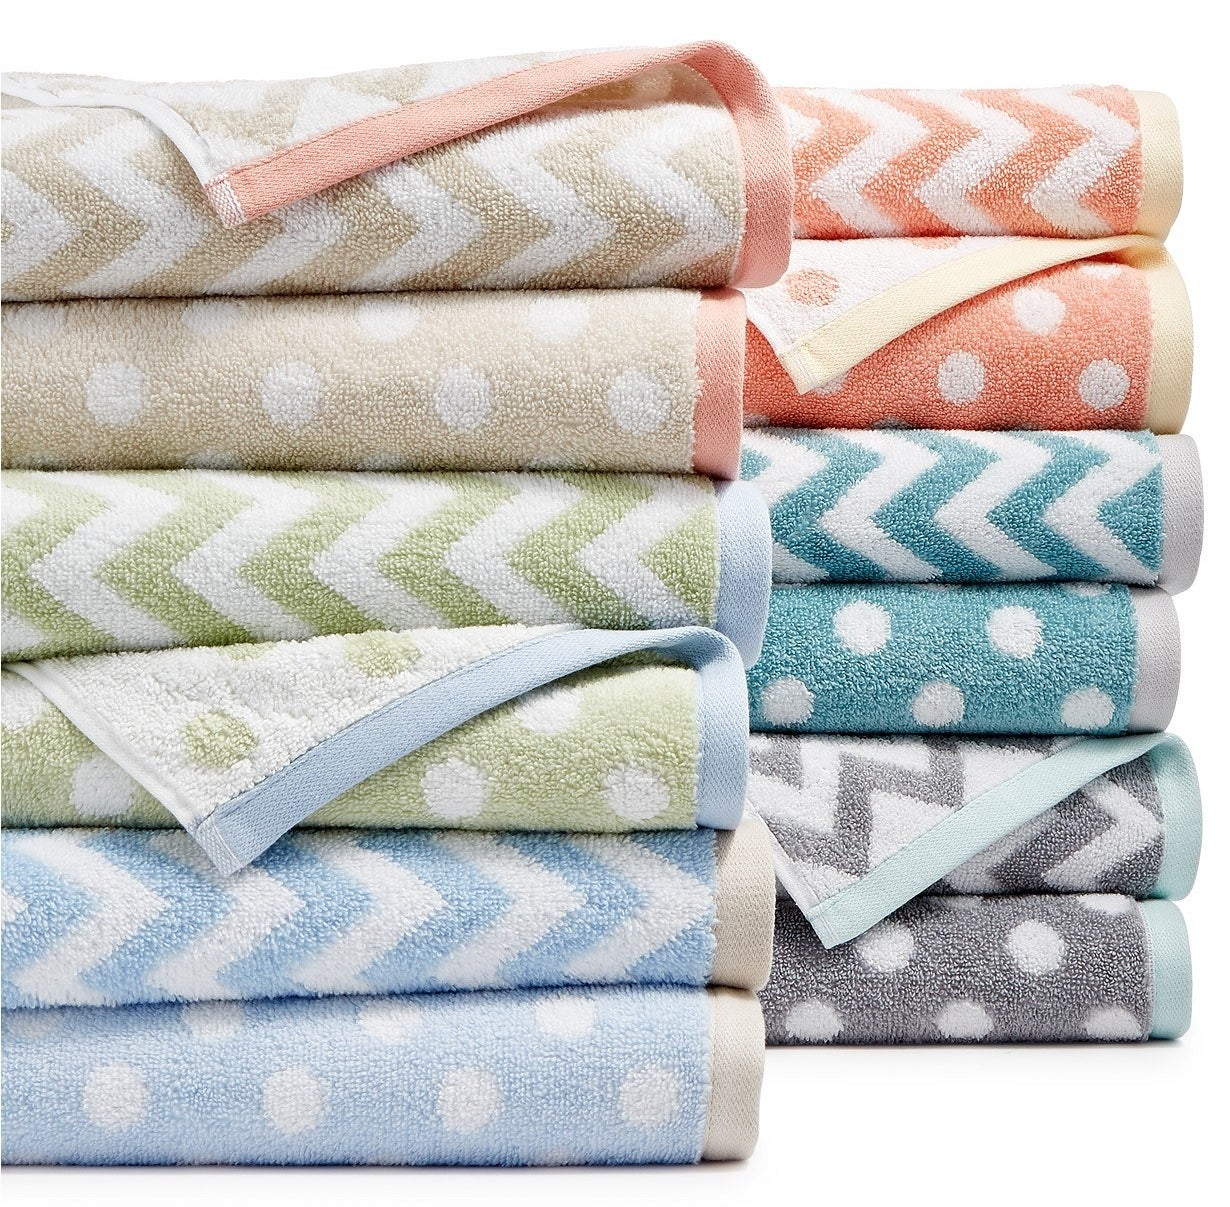 A stack of the tan, blue, green, grey, and coral towels